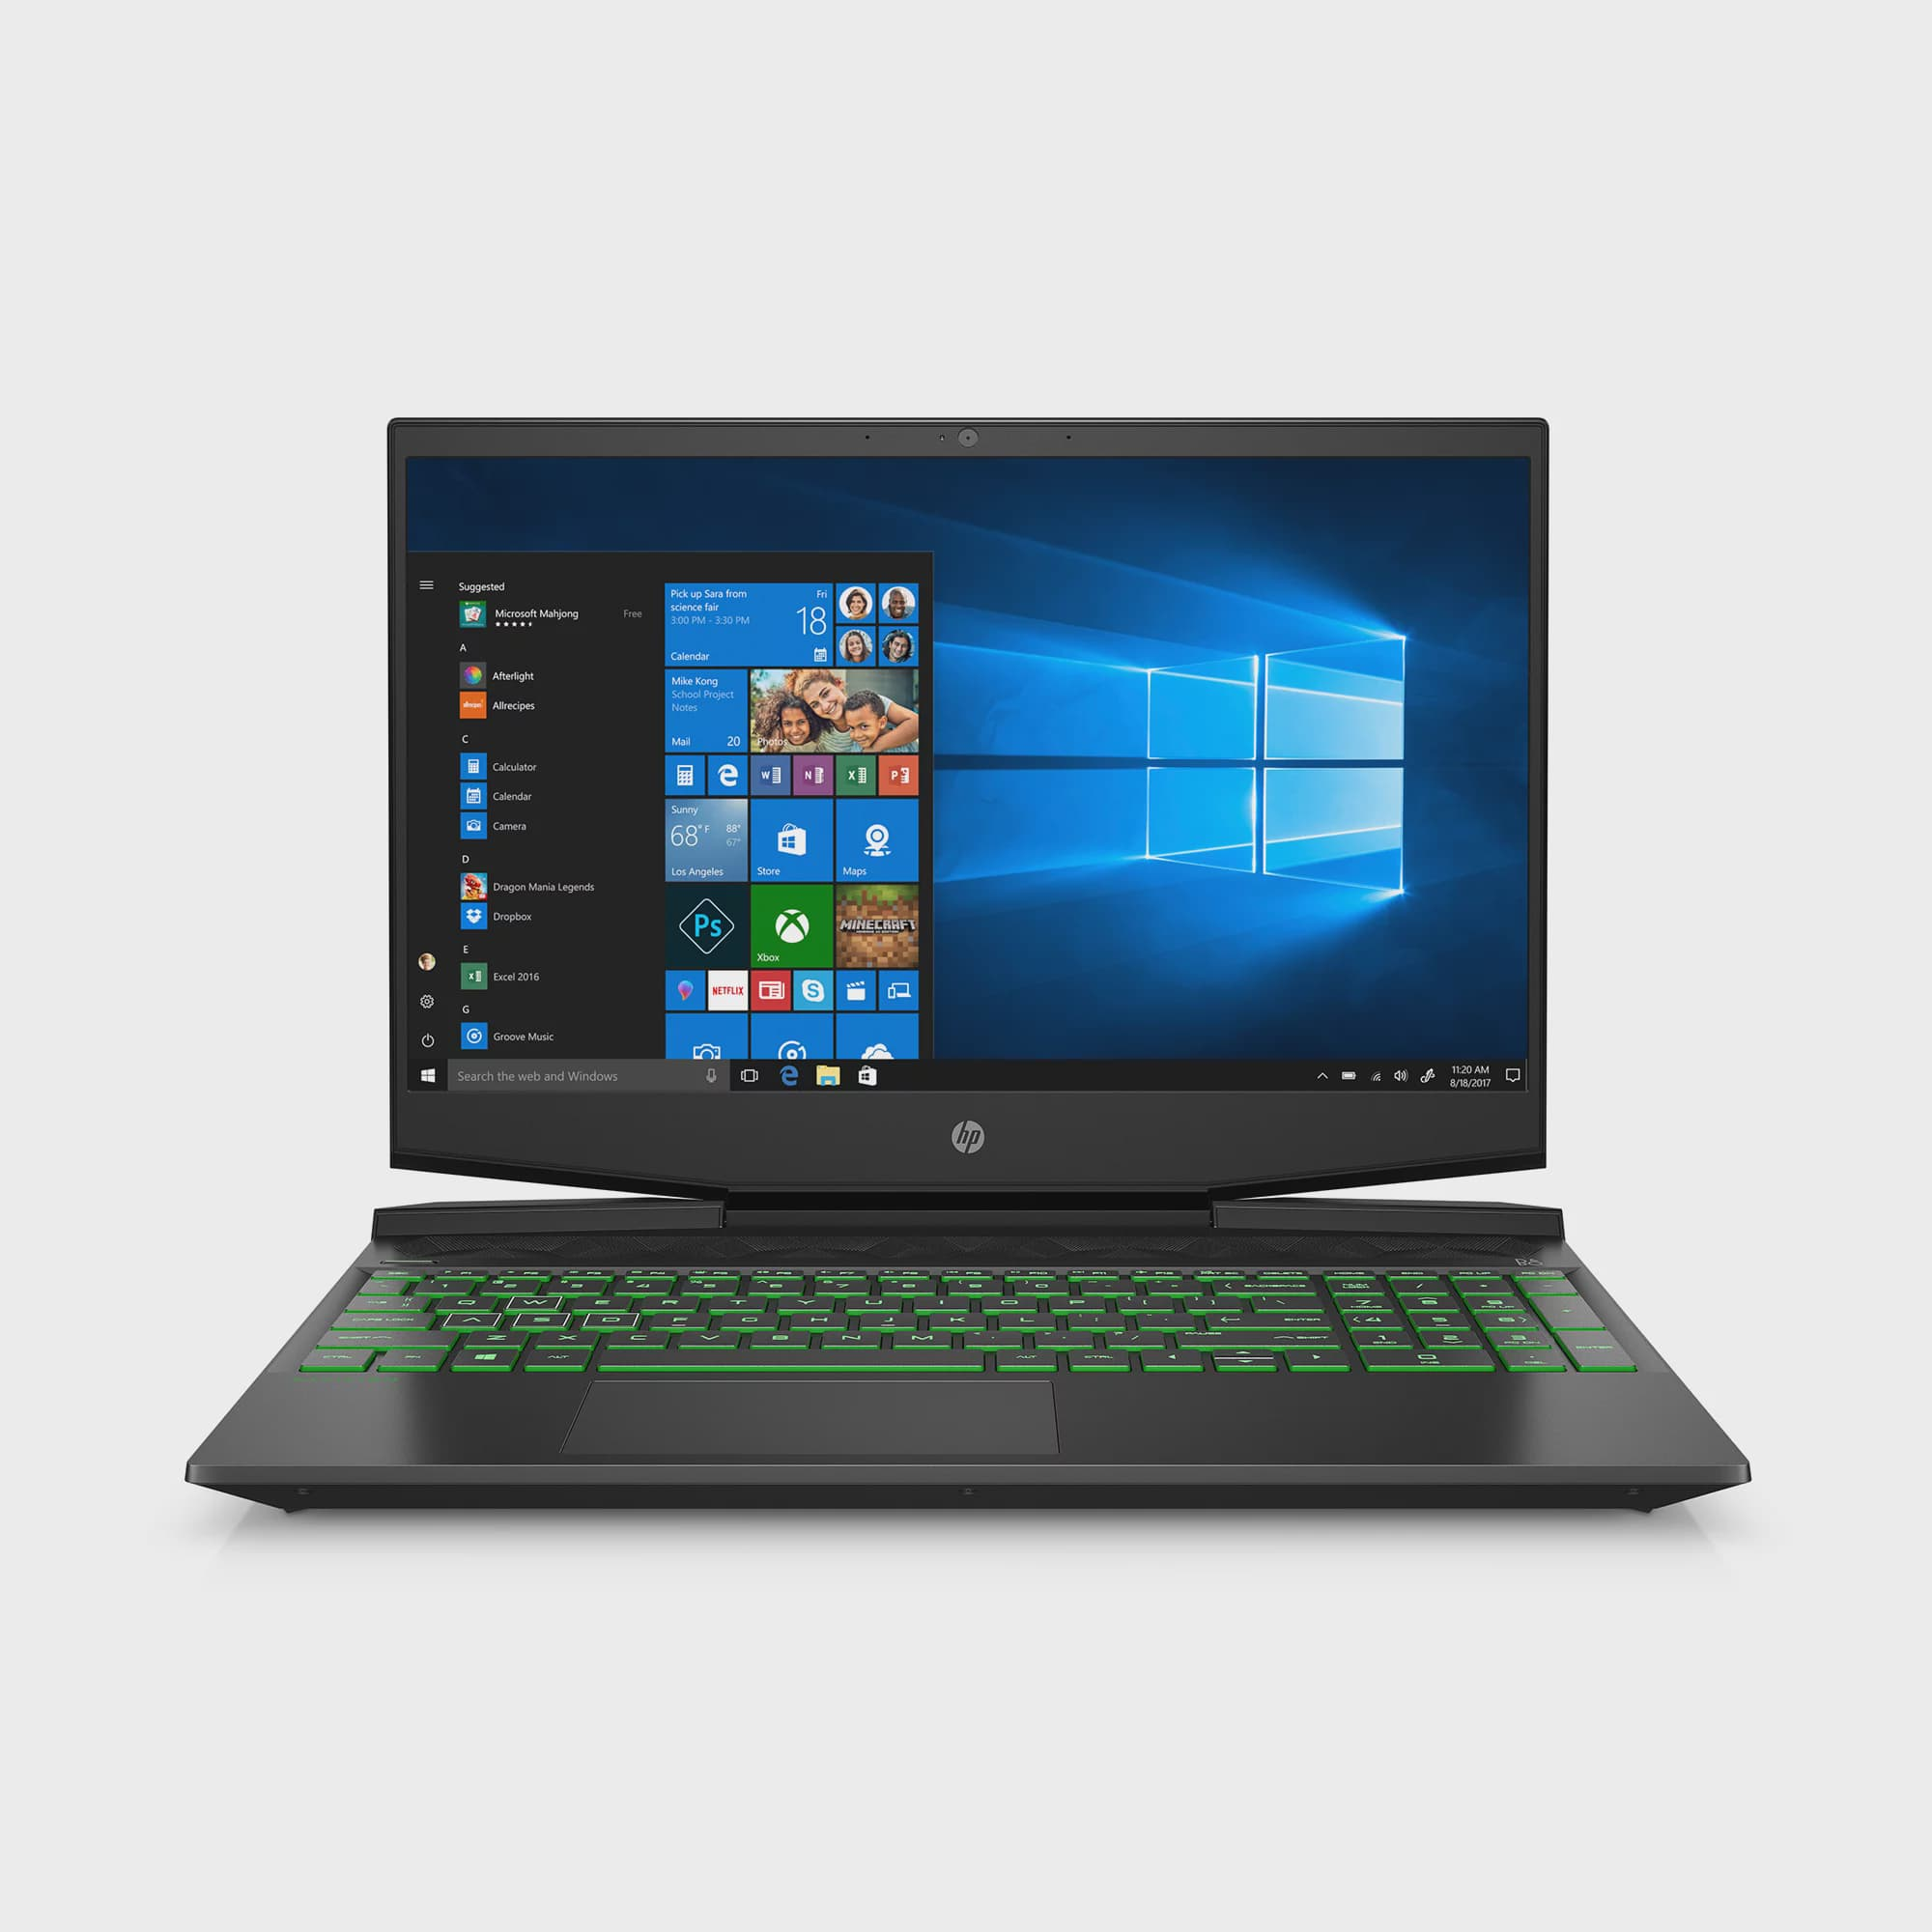 "HP Pavilion 15.6"" FHD Gaming Laptop, Intel Core i5-9300H, NVIDIA GeForce GTX 1050 (3 GB GDDR5), 8GB SDRAM, 256GB SSD, Shadow Black, Acid Green, 15-dk0068wm"